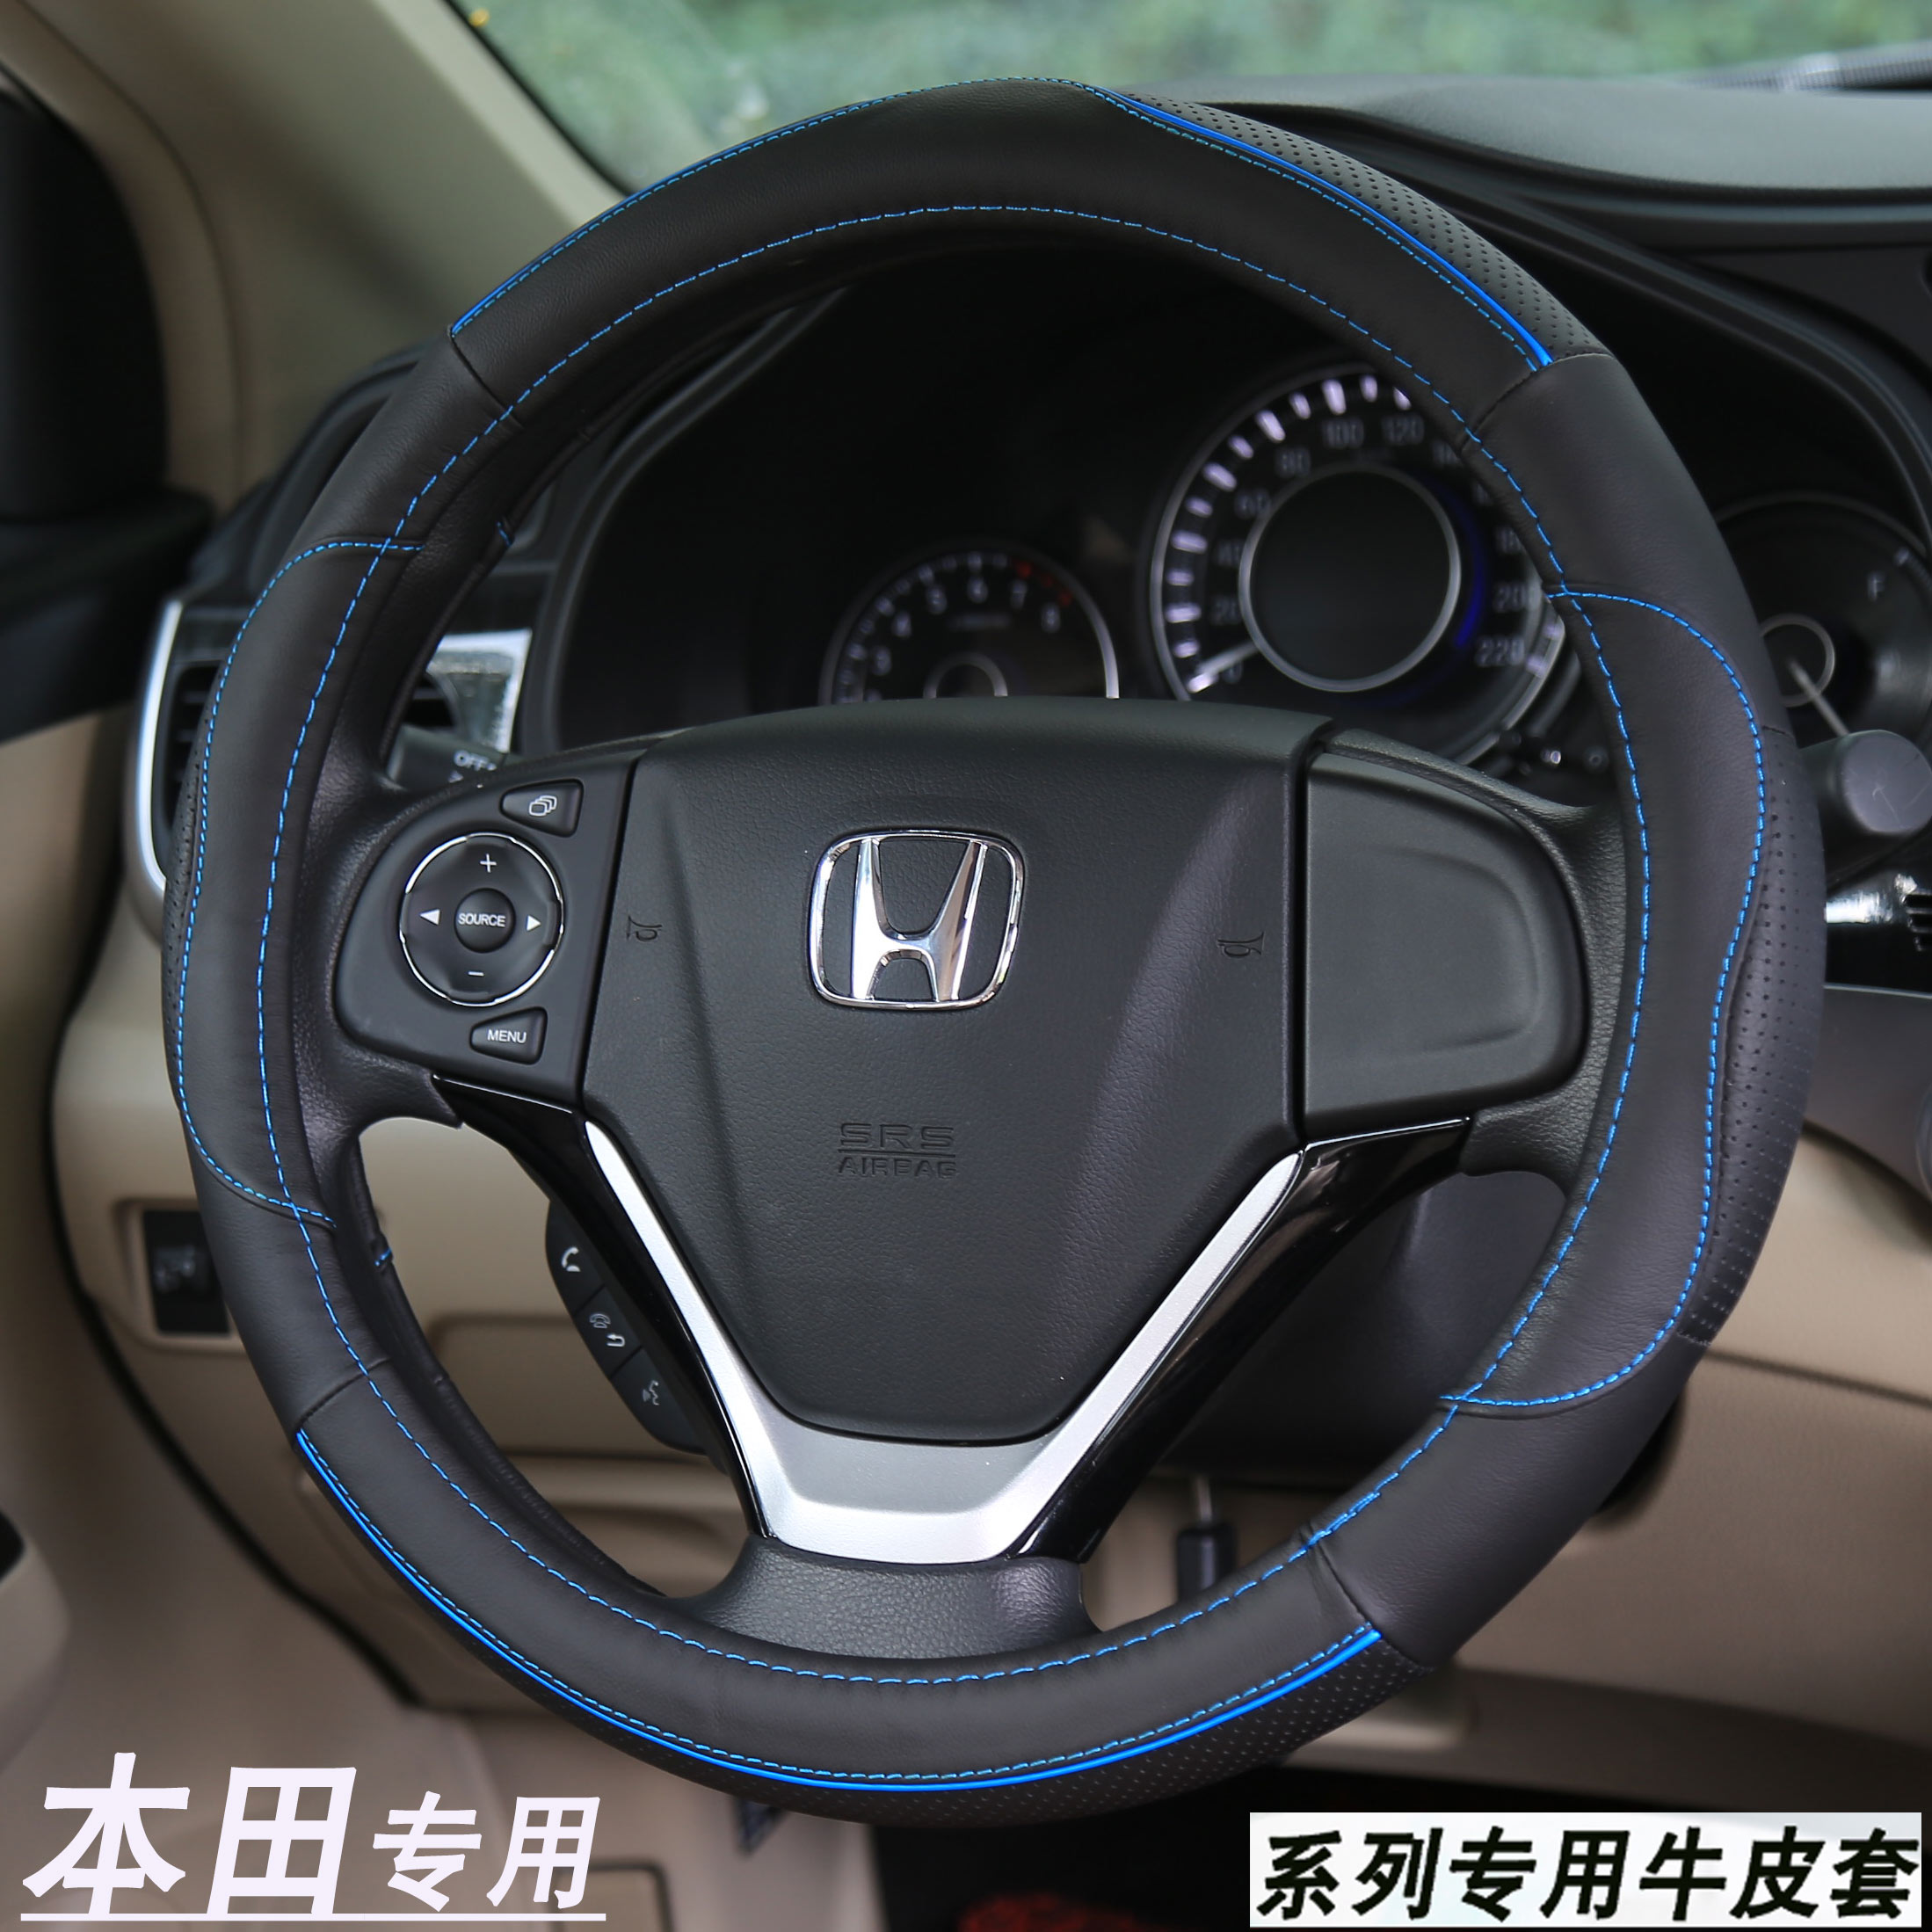 Get quotations dongfeng honda 15 models new crv xrv jed nine generation civic accord ling faction sidi special